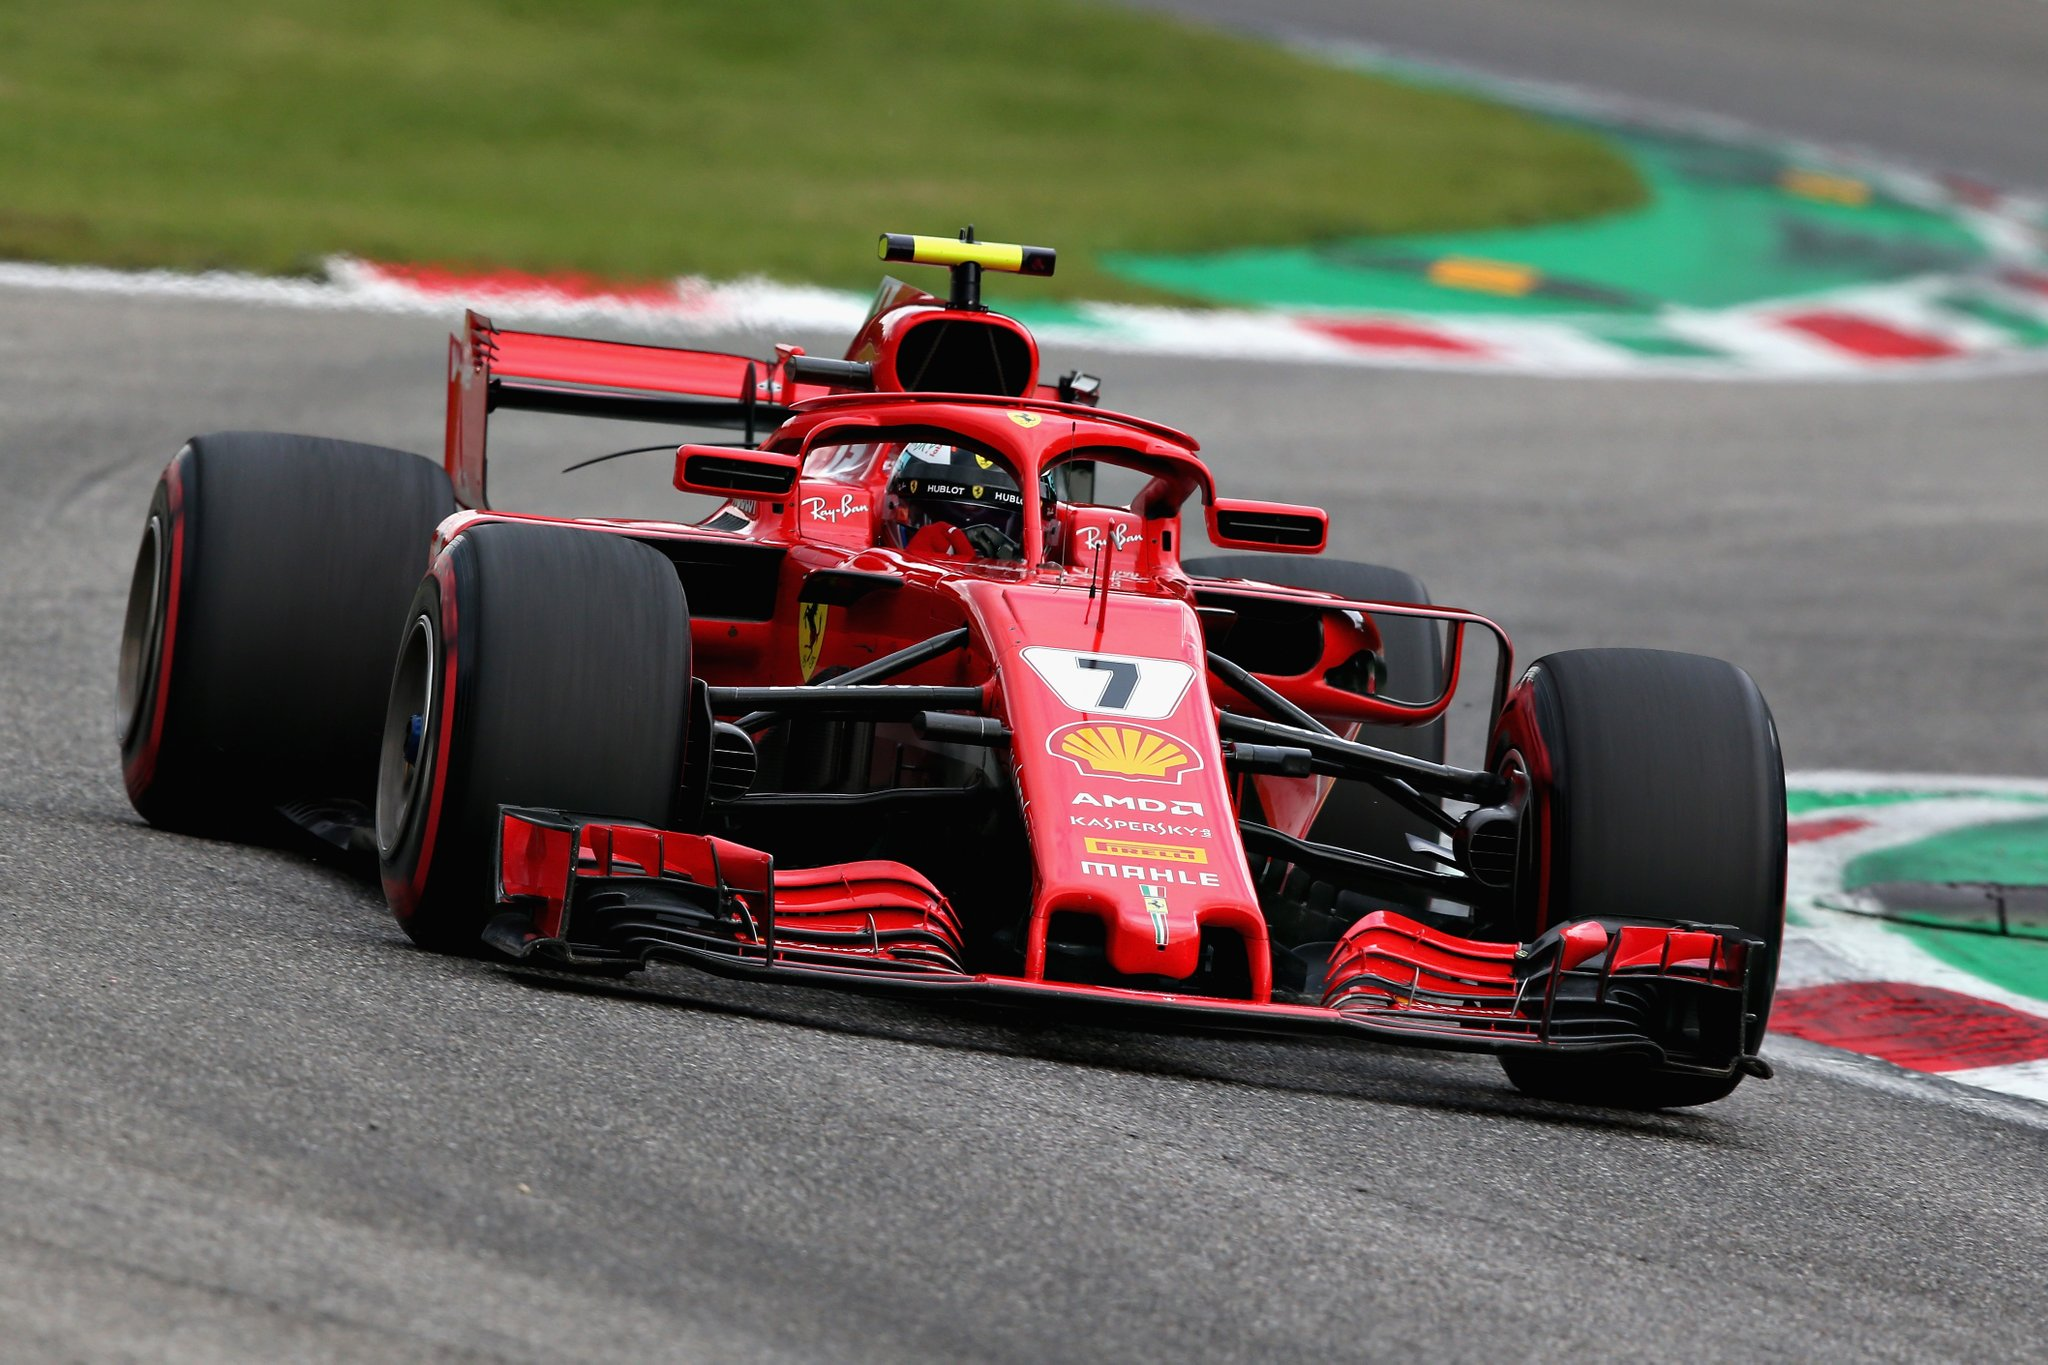 Monza Qualifications : Raikkonen en pole devant les tifosis !